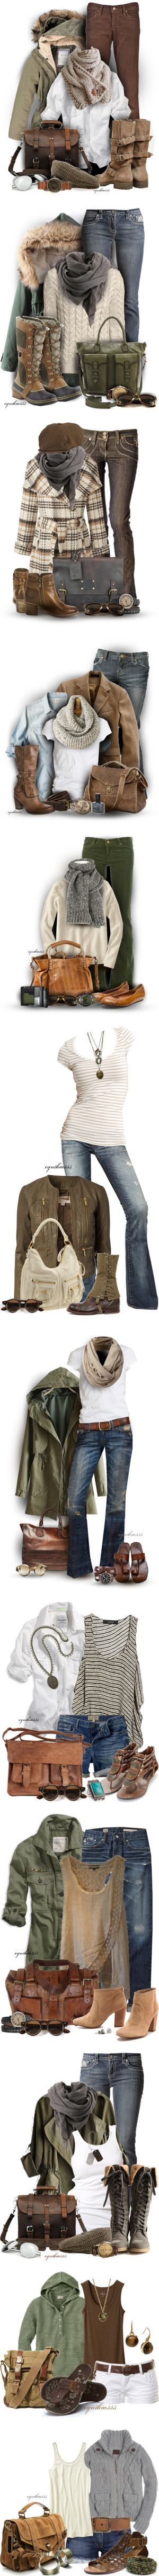 Earthy Comfort by cynthia335 on Polyvore featuring Citizens of Humanity, American Eagle Outfitters, Failsworth Hats, Urban Boundaries, H&M, Liebeskind, SOREL, Bruuns Bazaar, Treska and Coldwater Creek